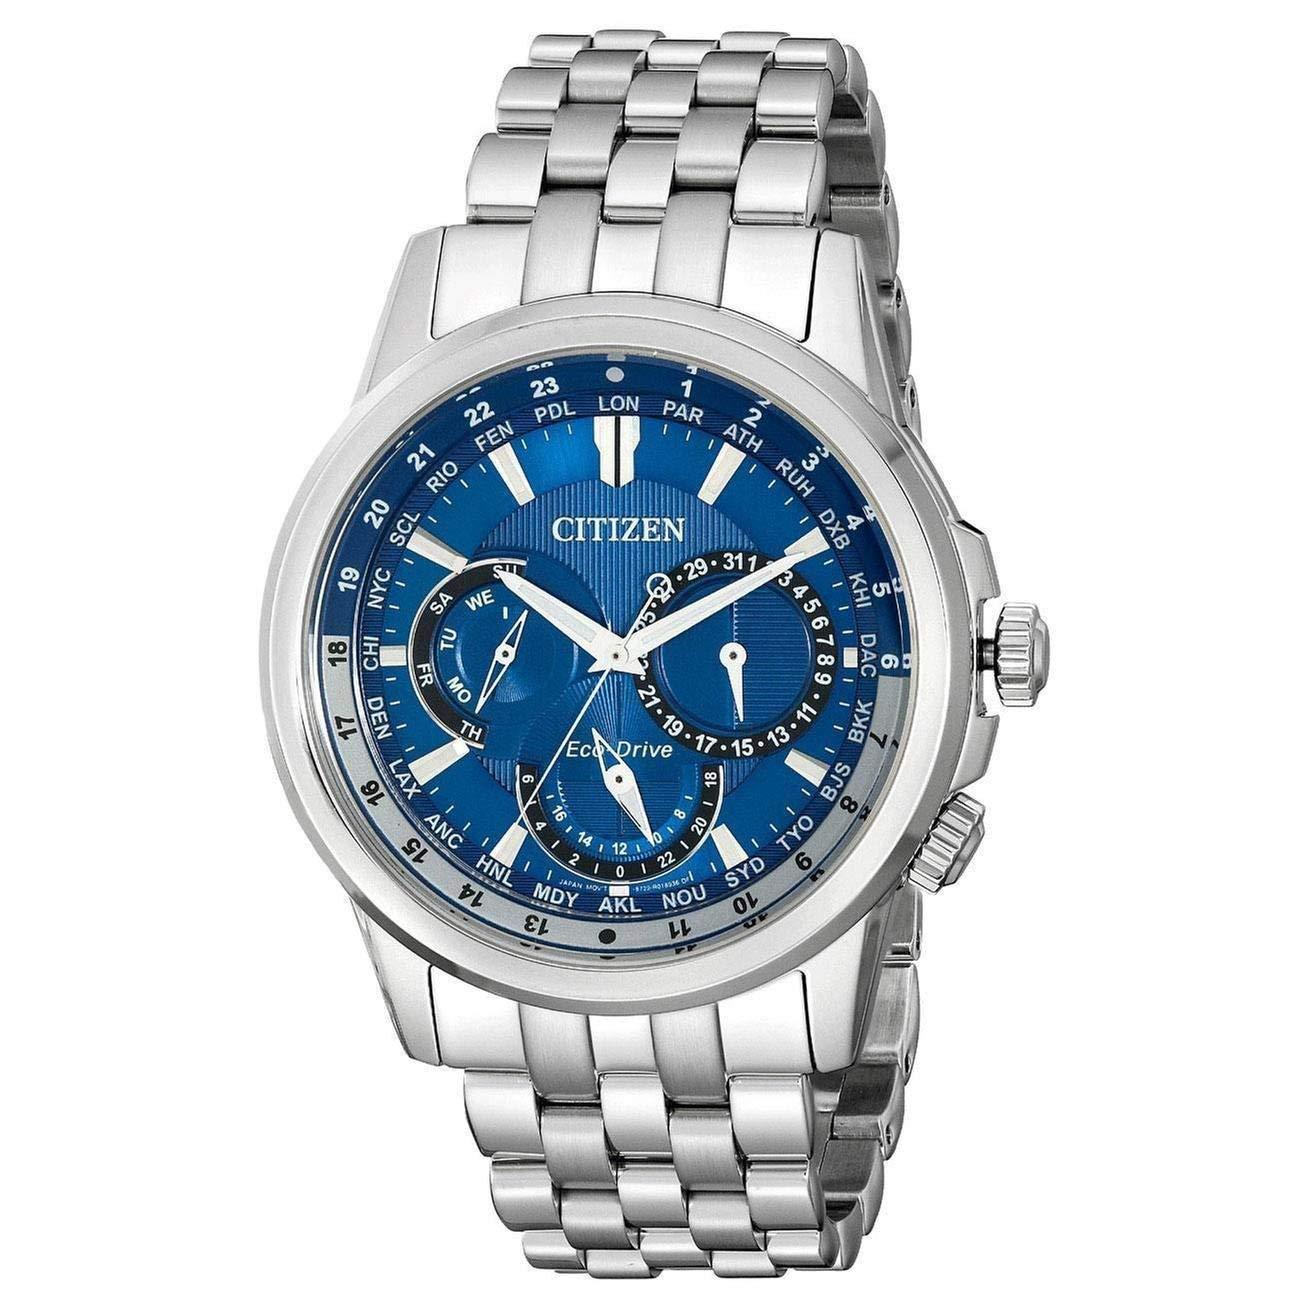 Citizen Men's Eco-Drive Stainless Steel Watch BU2021-51L